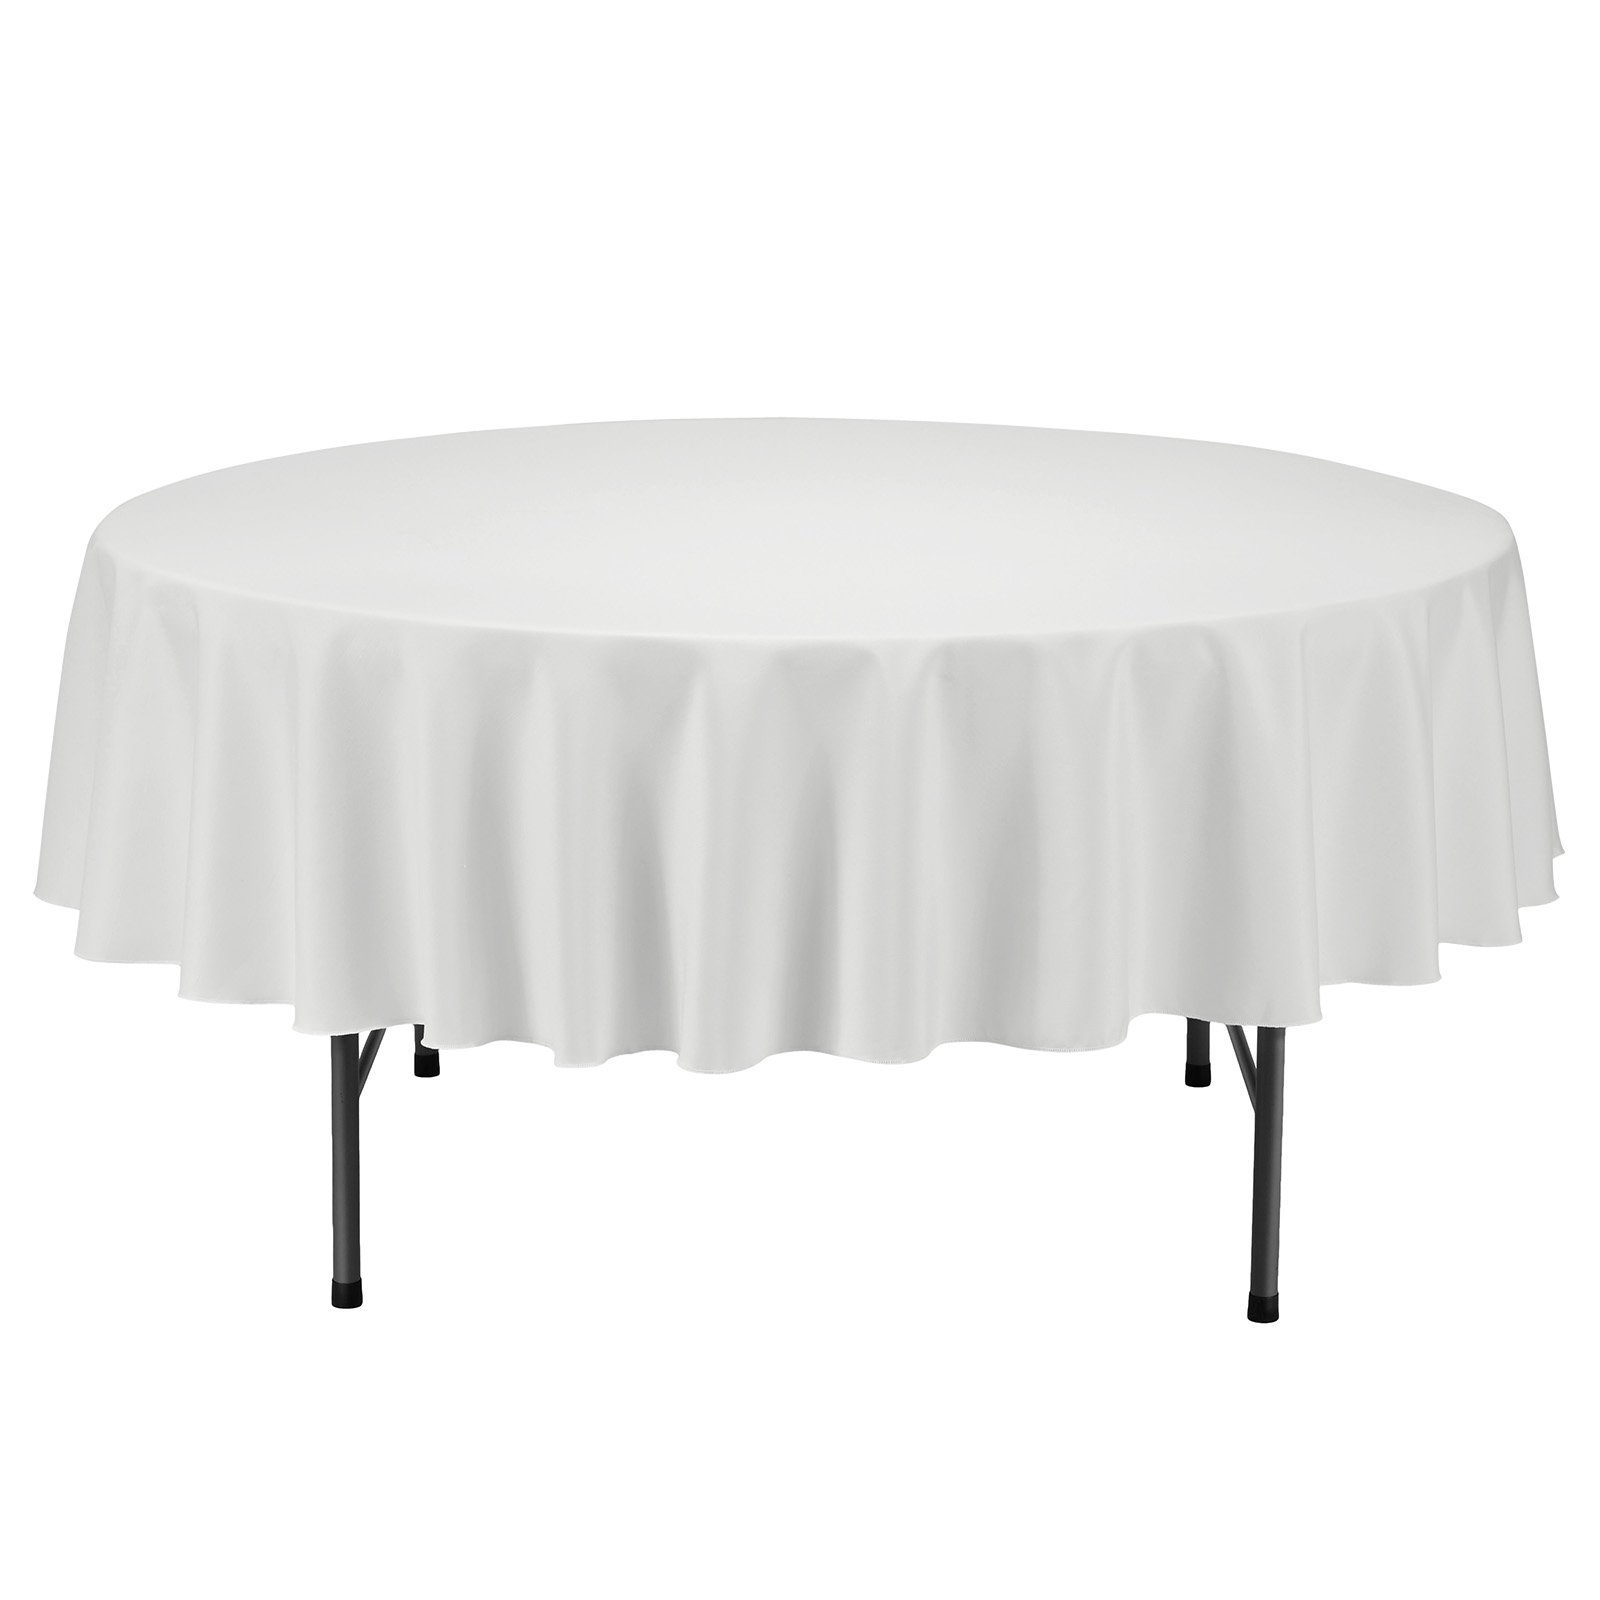 Remedios Round Tablecloth Solid Color Polyester Table Cloth for Bridal Shower Wedding Table – Wrinkle Free Dinner Tablecloth for Restaurant Party Banquet (Ivory, 70 inch)